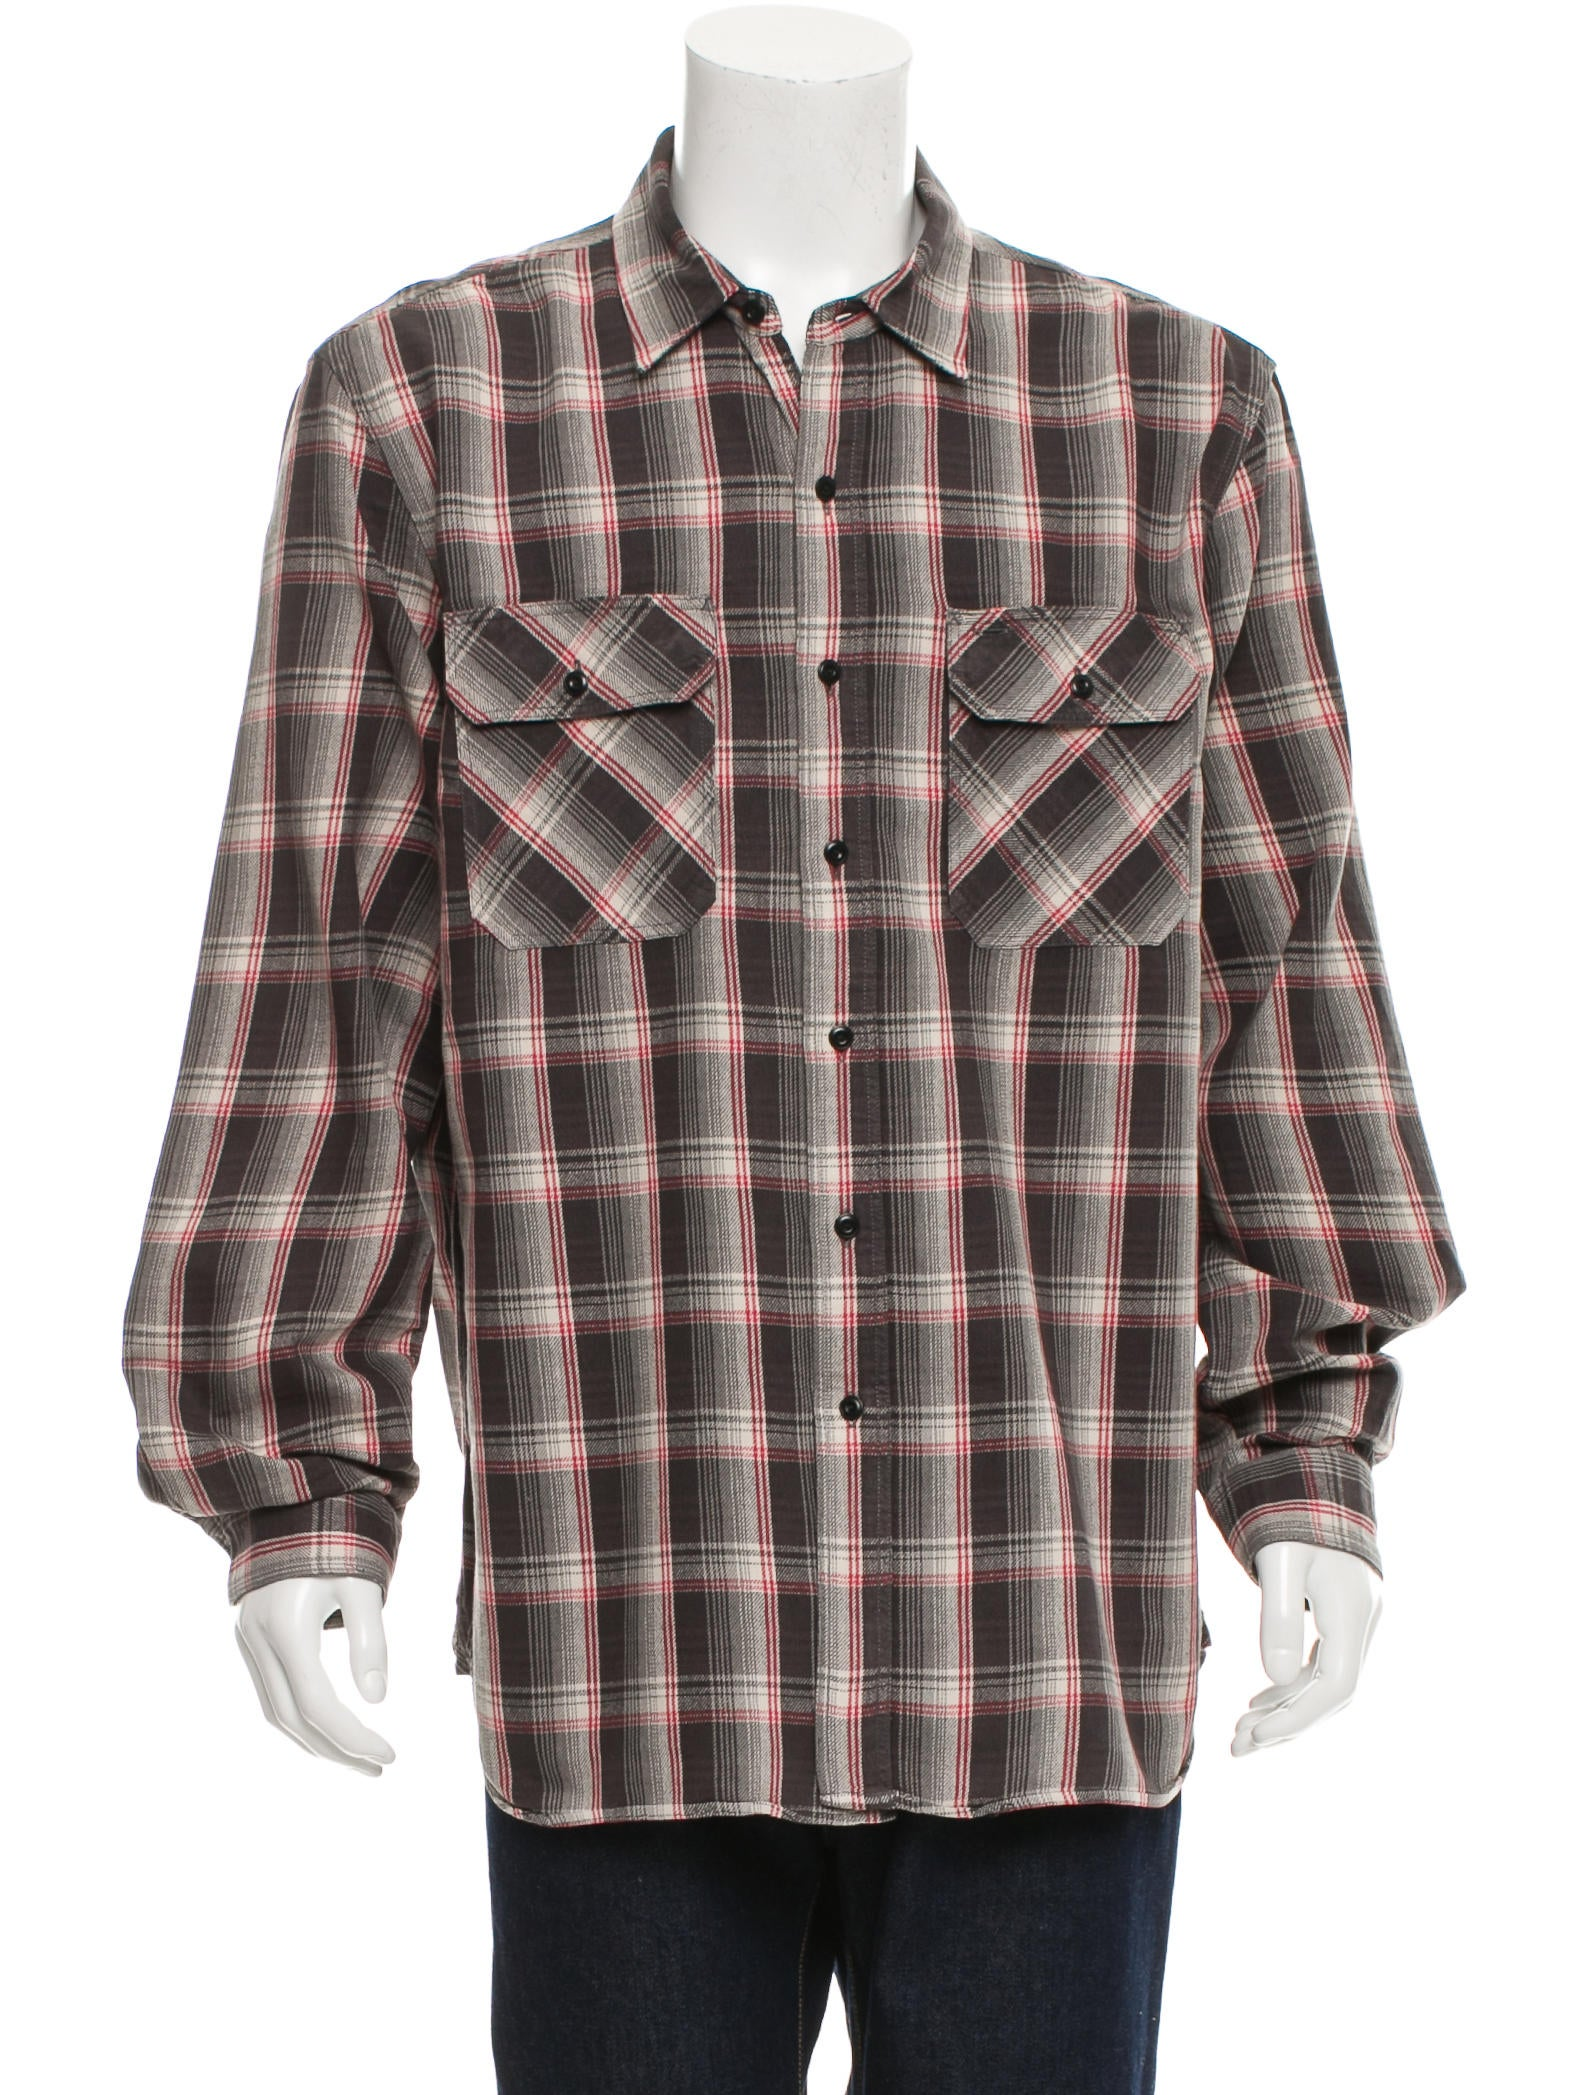 Rrl co plaid button up shirt mens shirts wrrll20319 for Button up mens shirt